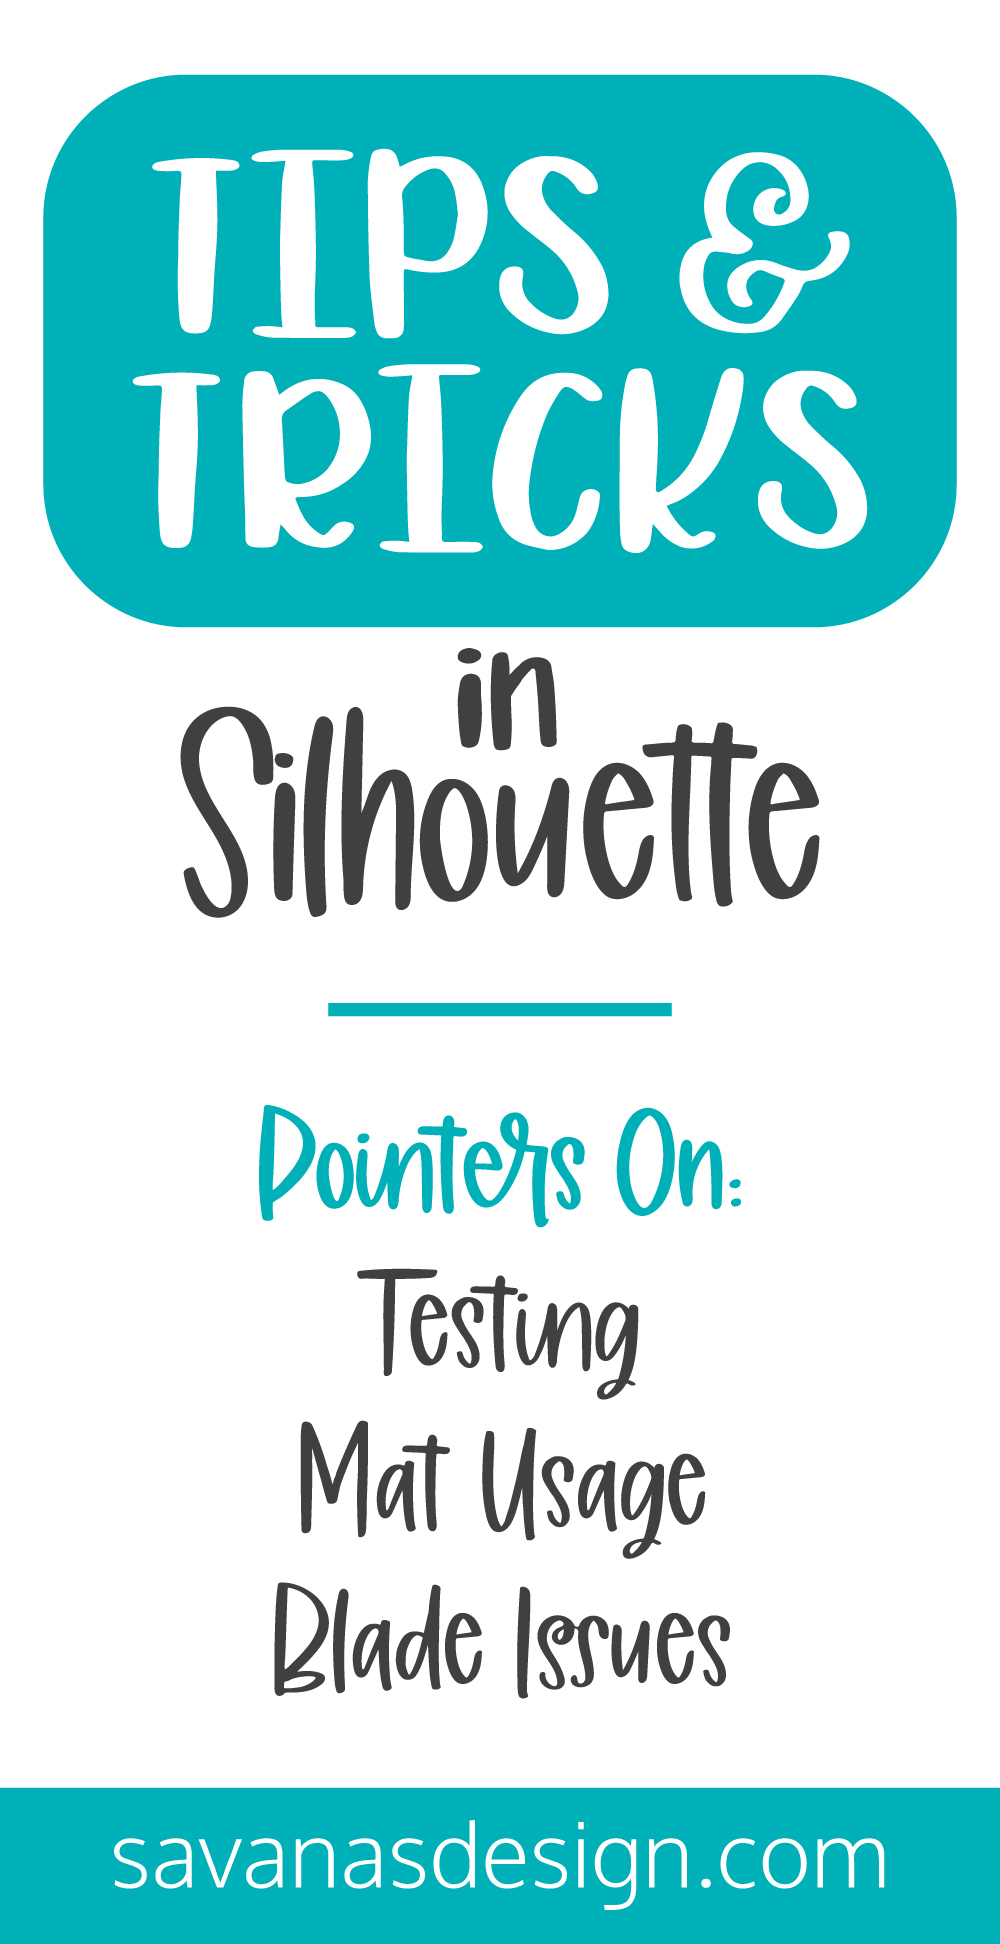 Silhouette Tips and Tricks Pinterest